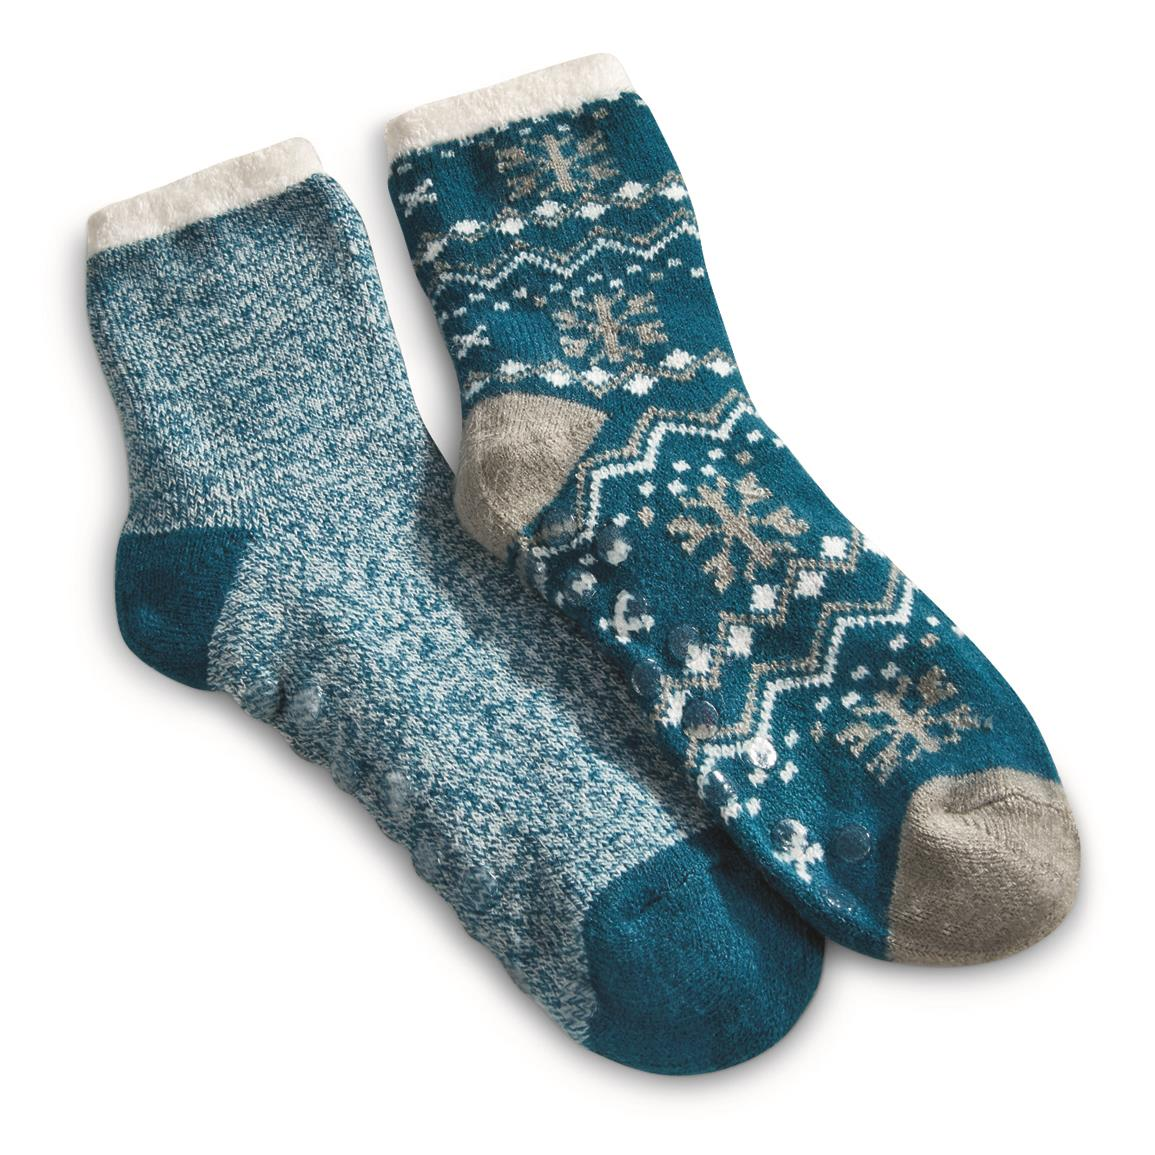 Guide Gear Women's Double-layer Gripper Socks, 2 Pairs, Teal